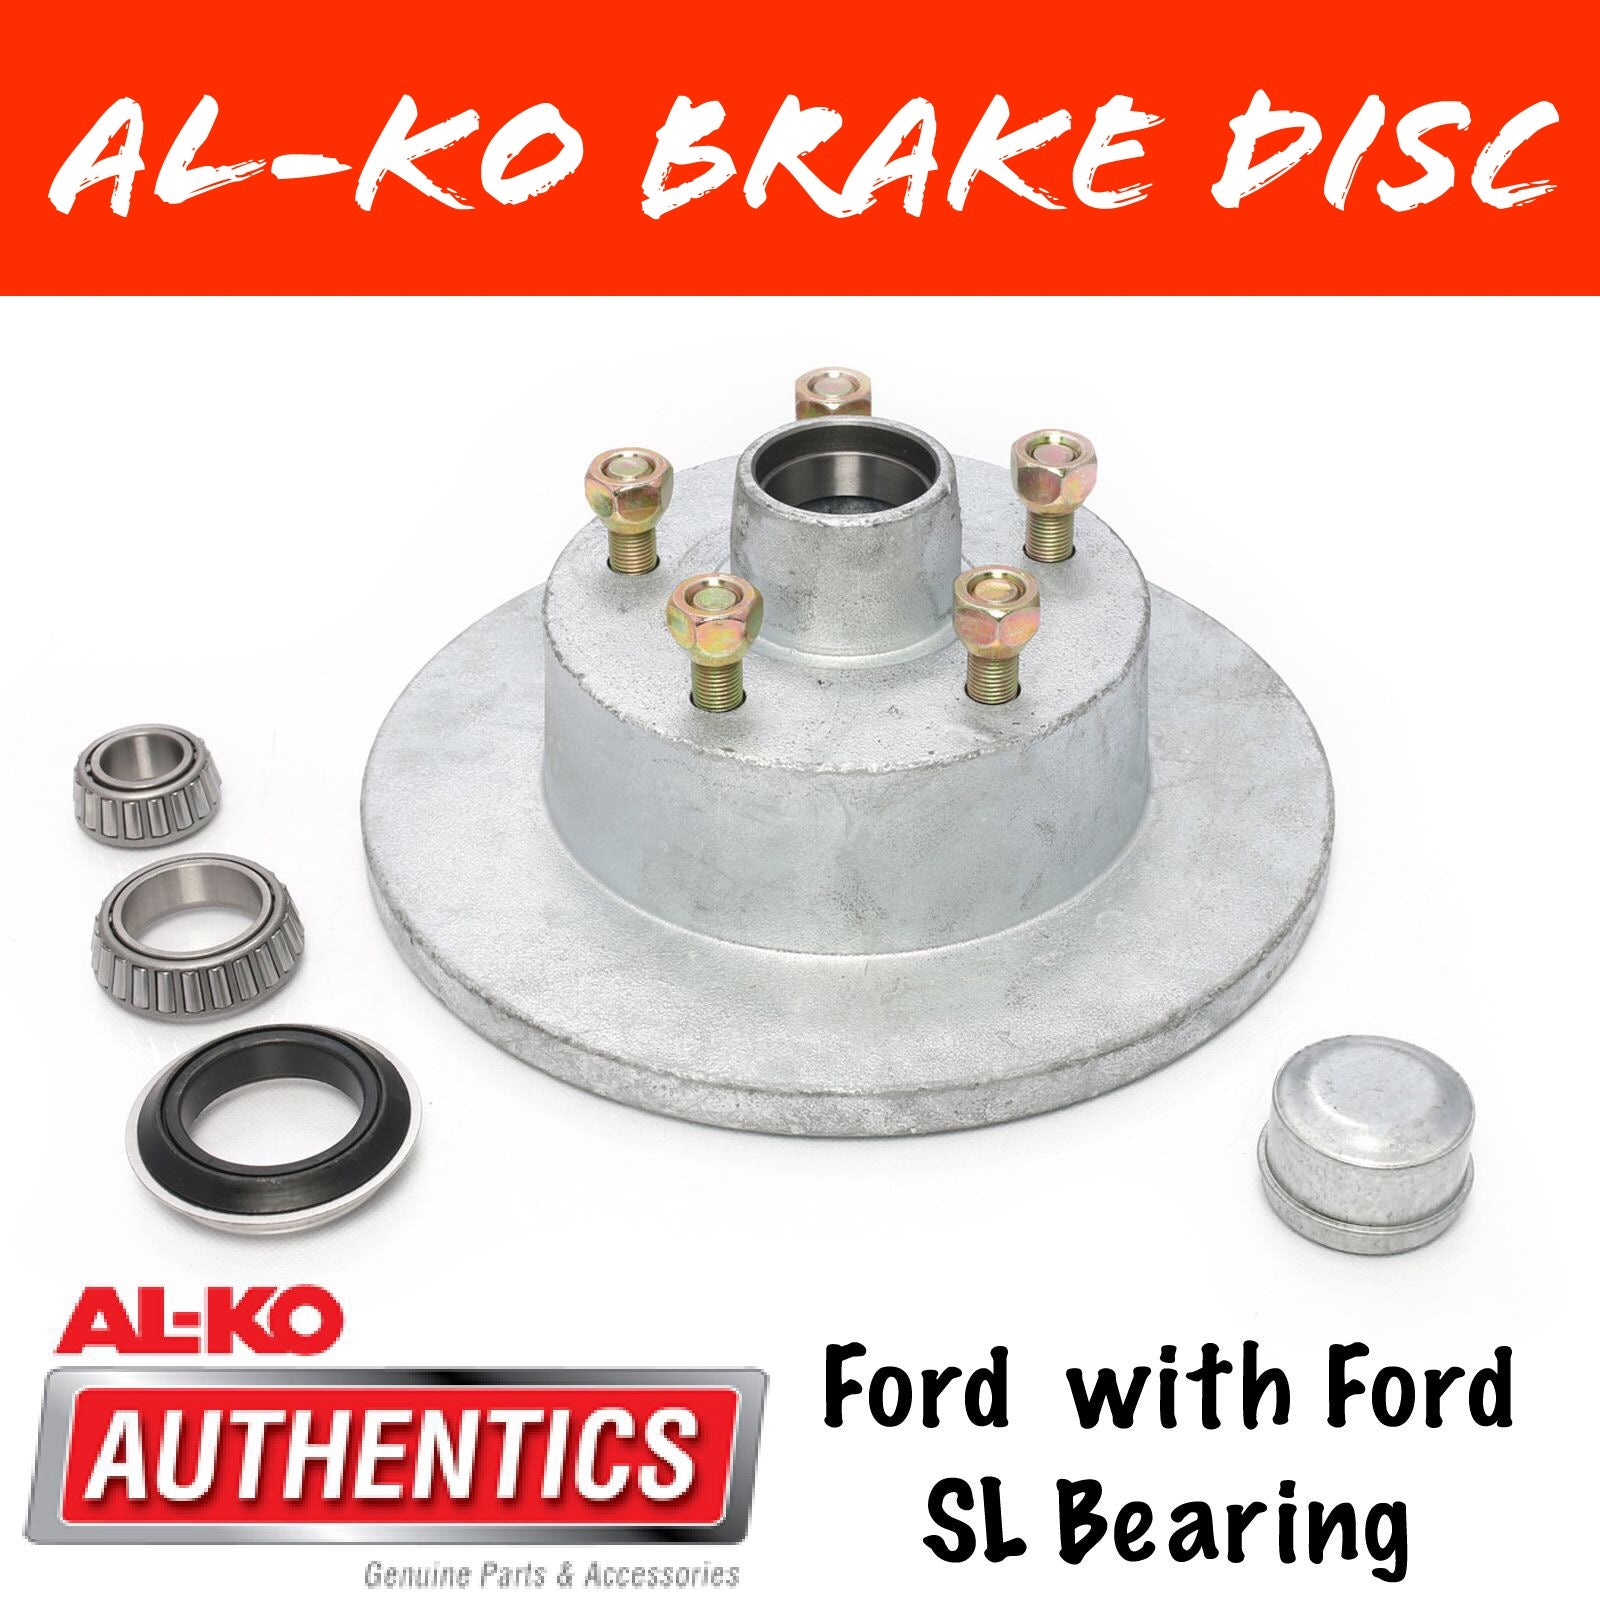 AL-KO Ford Gal Brake Disc with Ford Bearings